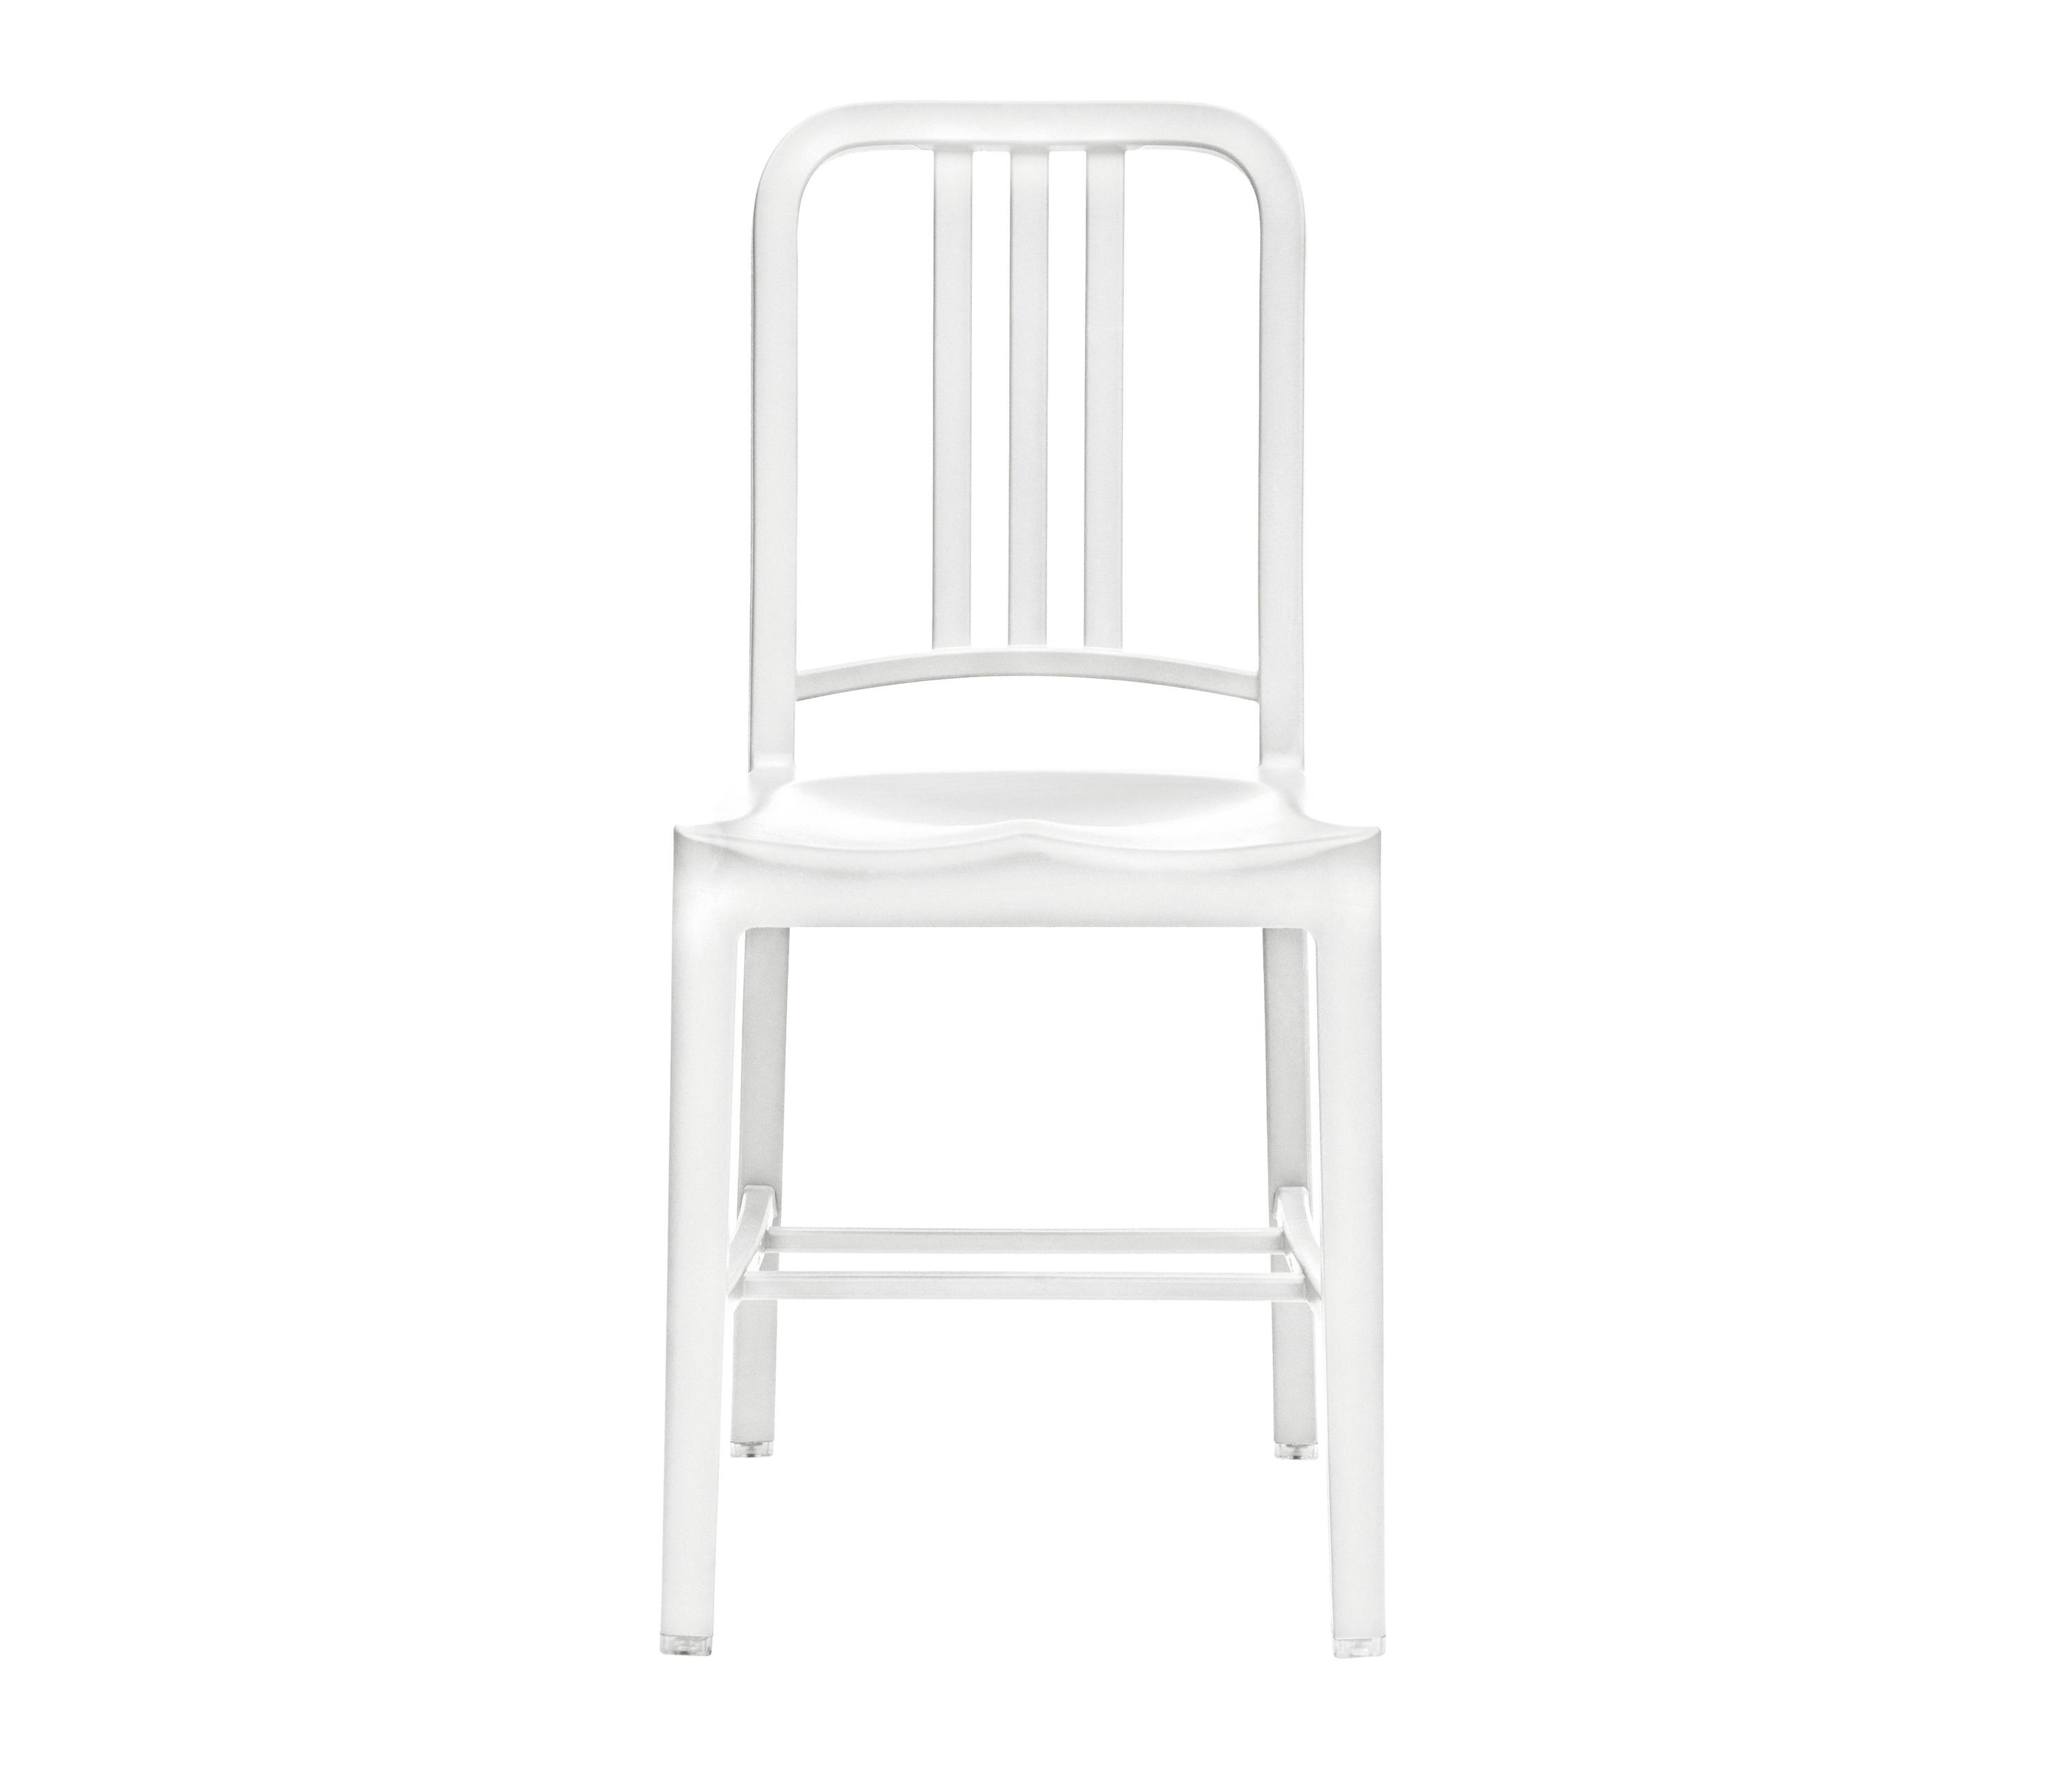 111 NAVY CHAIR Restaurant chairs from emeco